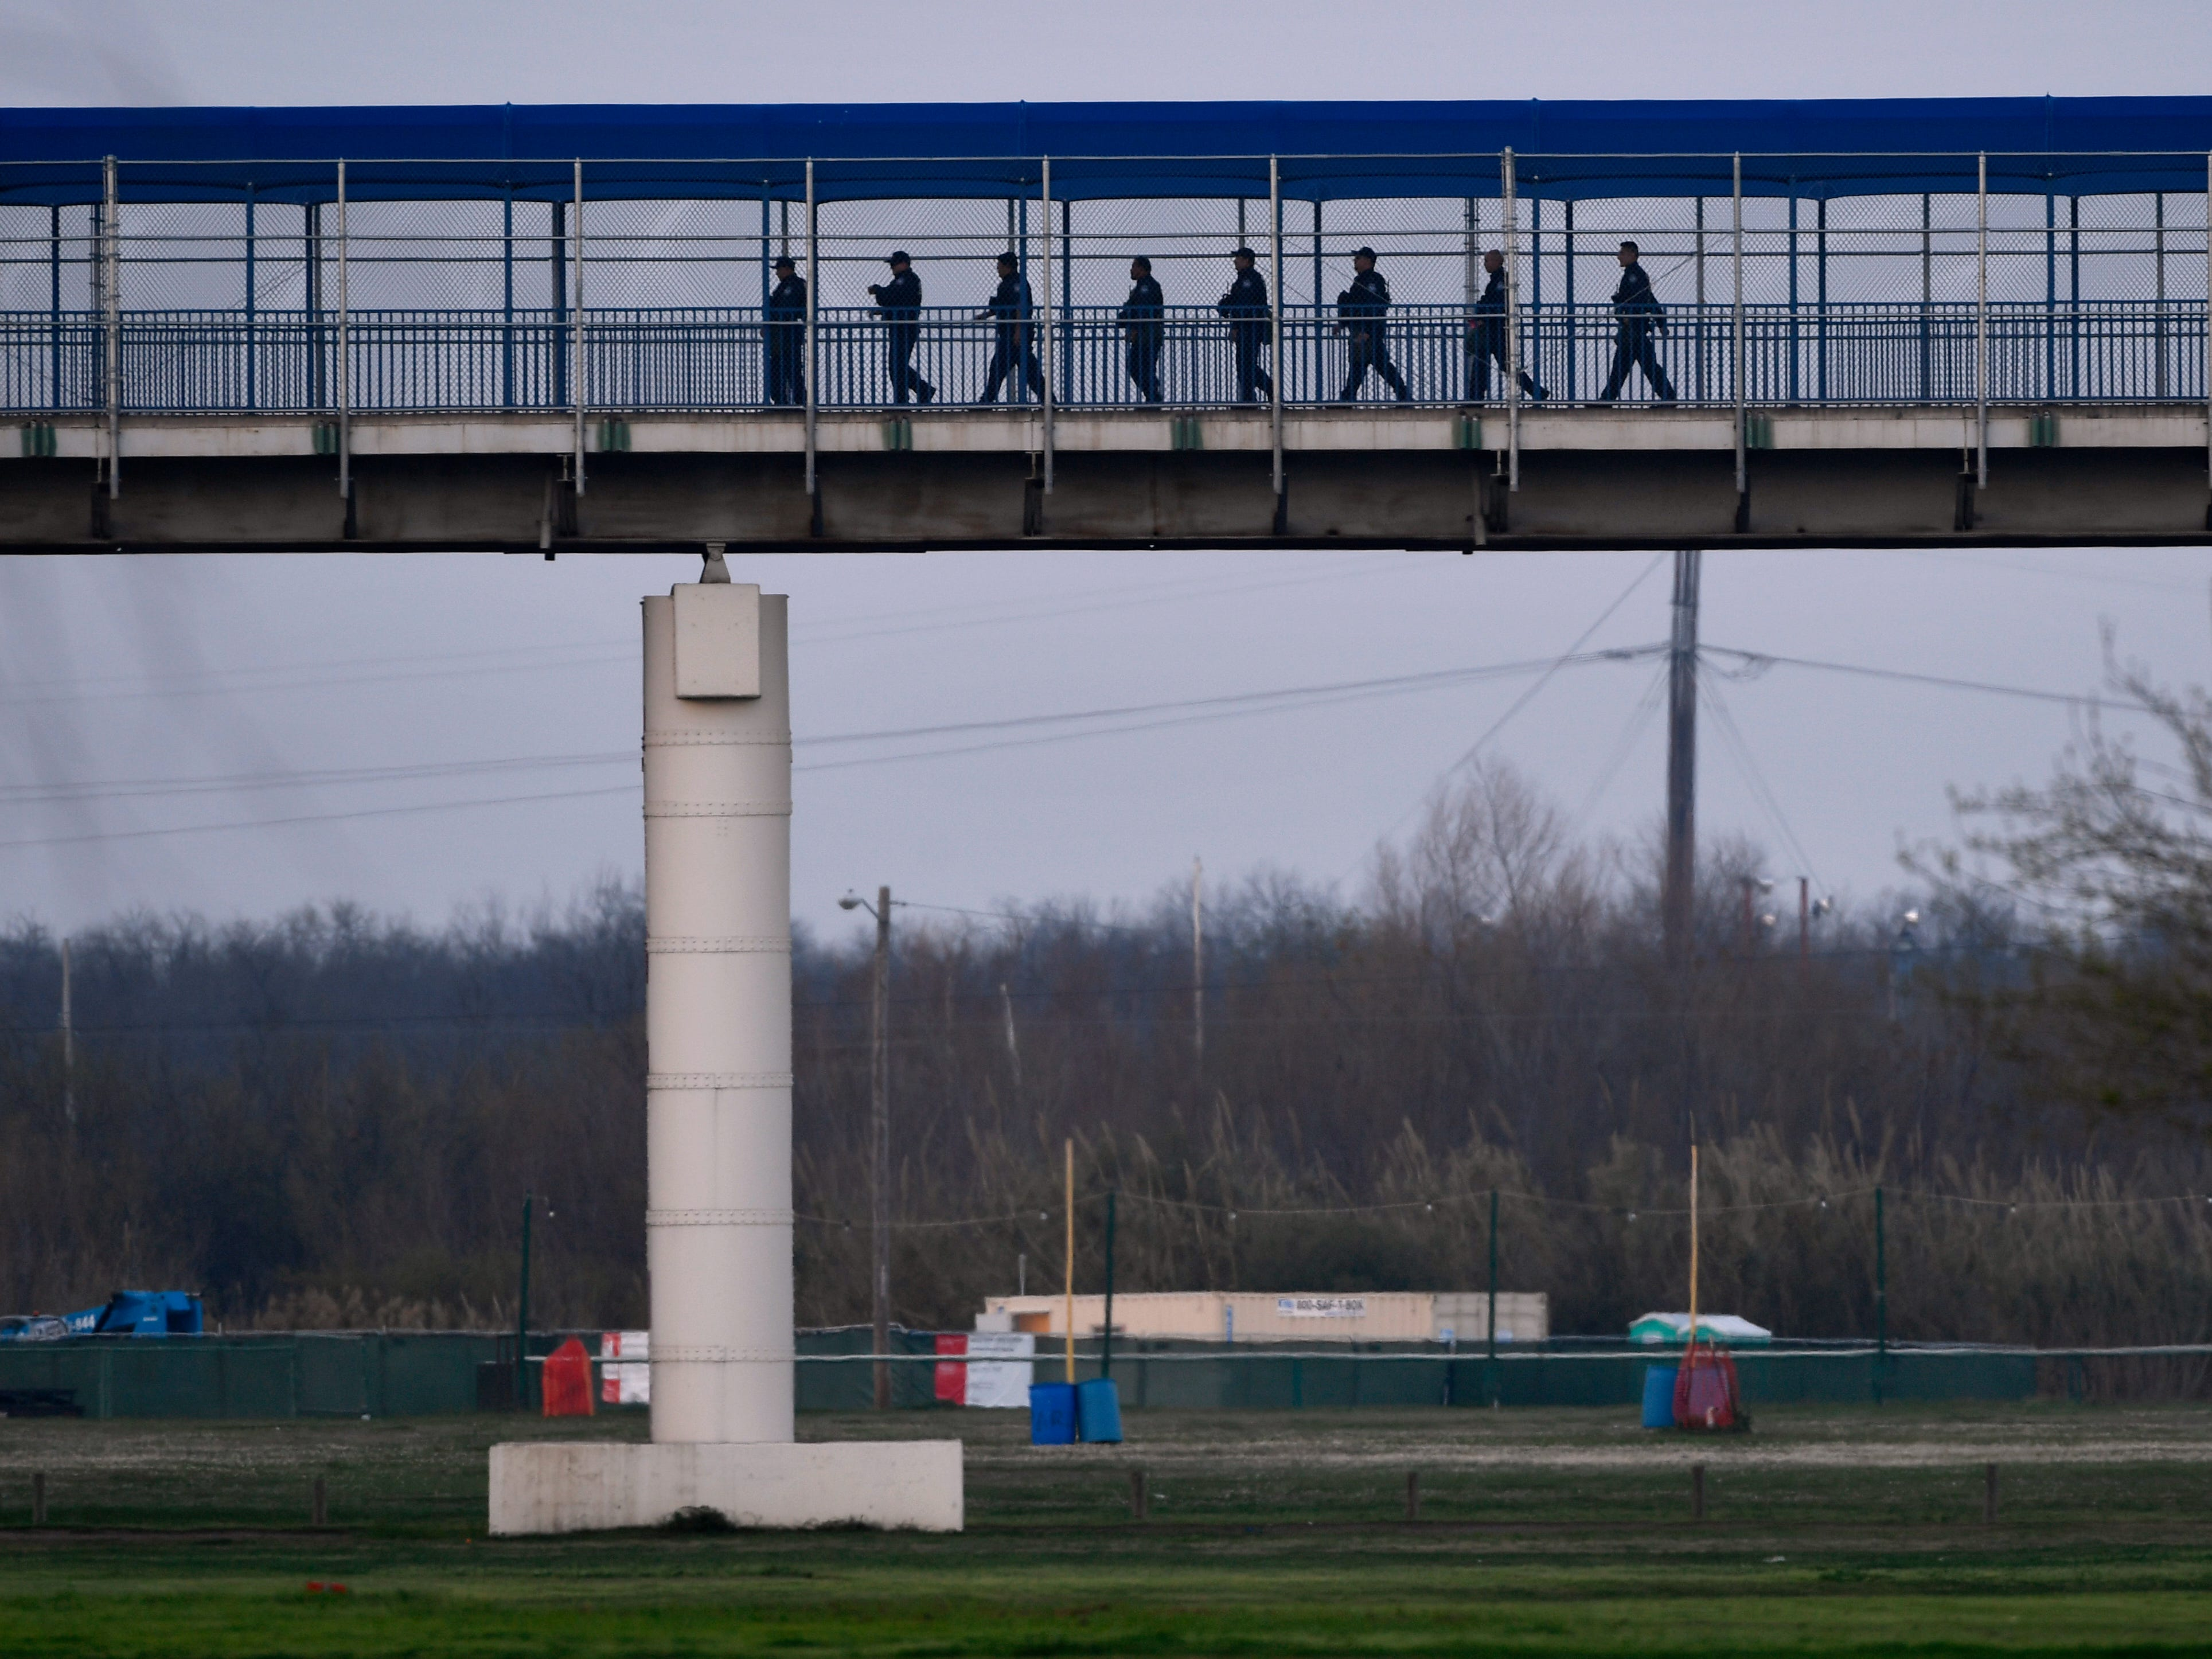 U.S. Customs and Border Protection agents walk to the checkpoint on the Eagle Pass International Bridge Wednesday Feb. 6, 2019. A caravan of Central American migrants has arrived in Piedras Negras and border law enforcement officials have increased their presence in response.